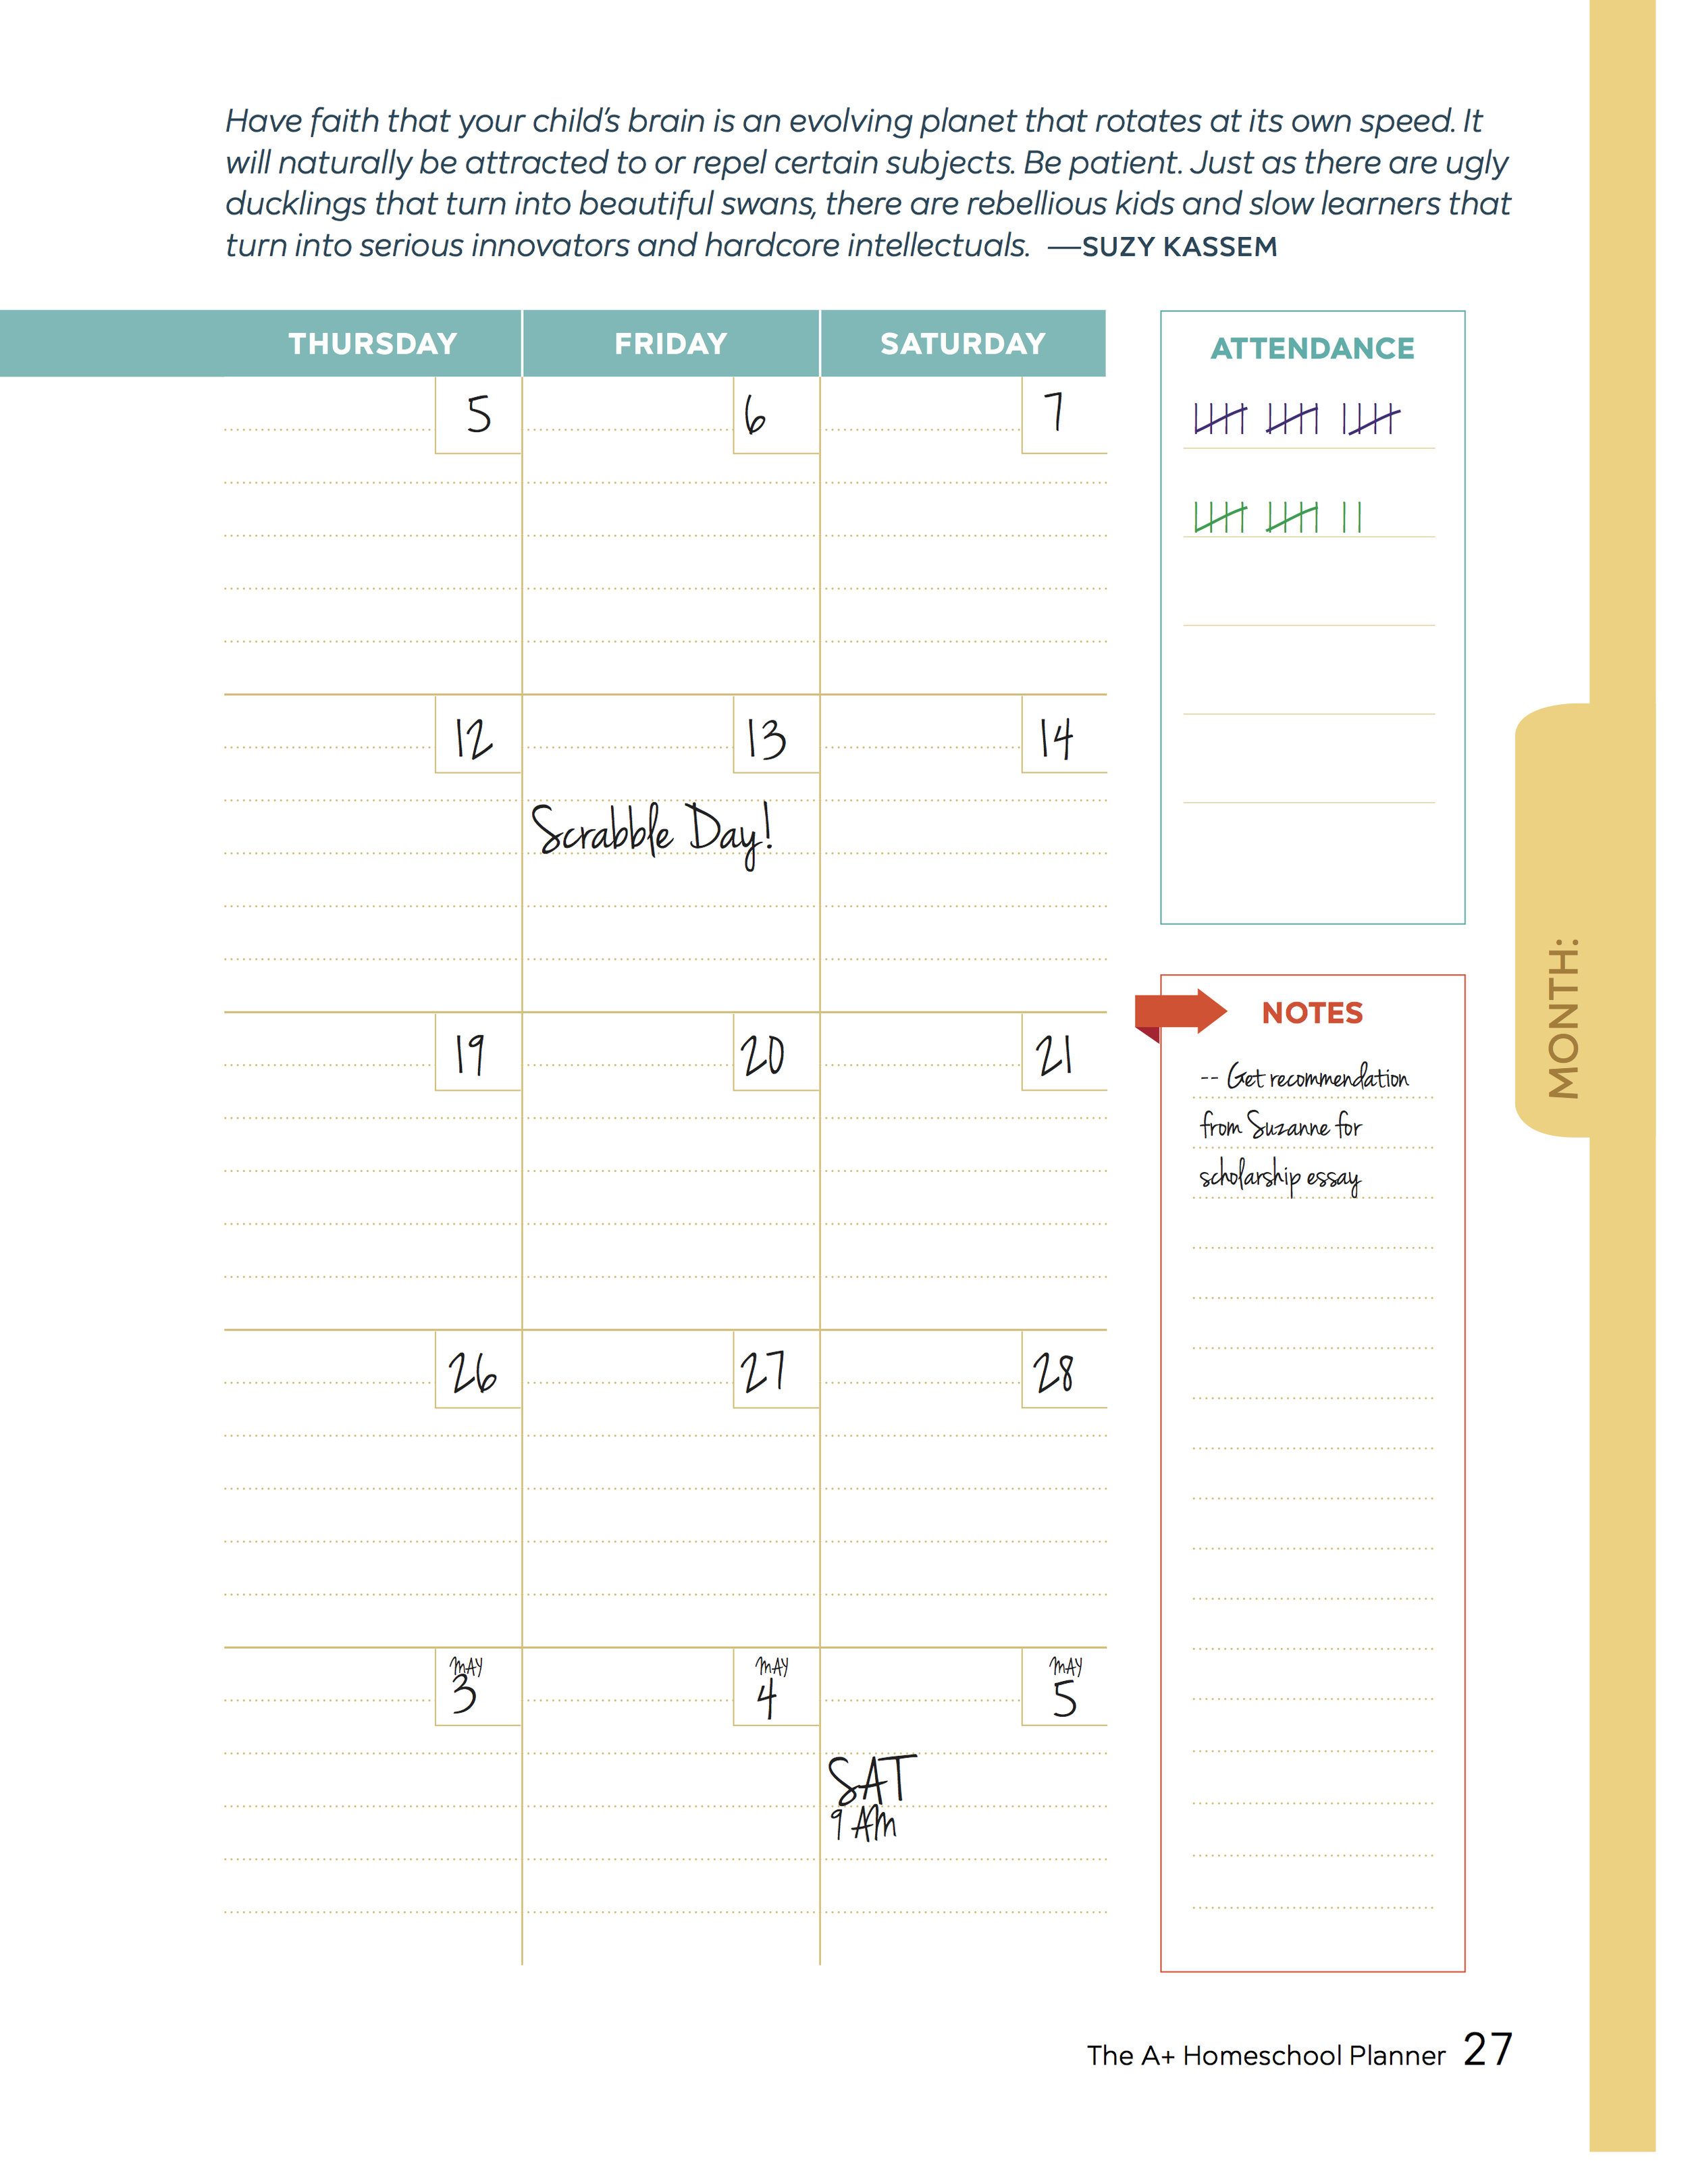 The Monthly pages of the A+ Homeschool planner have a space to track attendance.